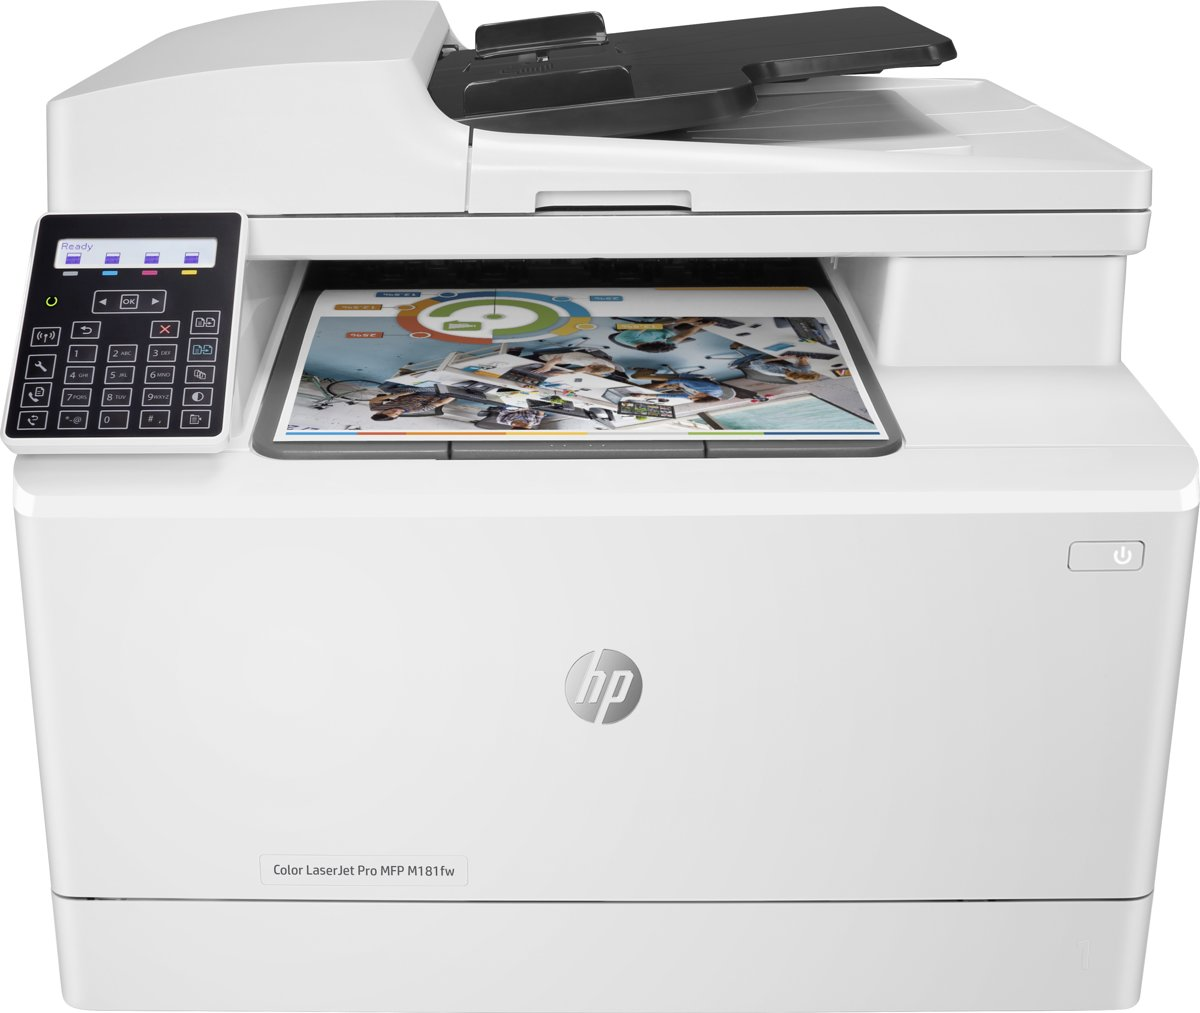 Color LaserJet Pro MFP M181fw - All-in-One printer